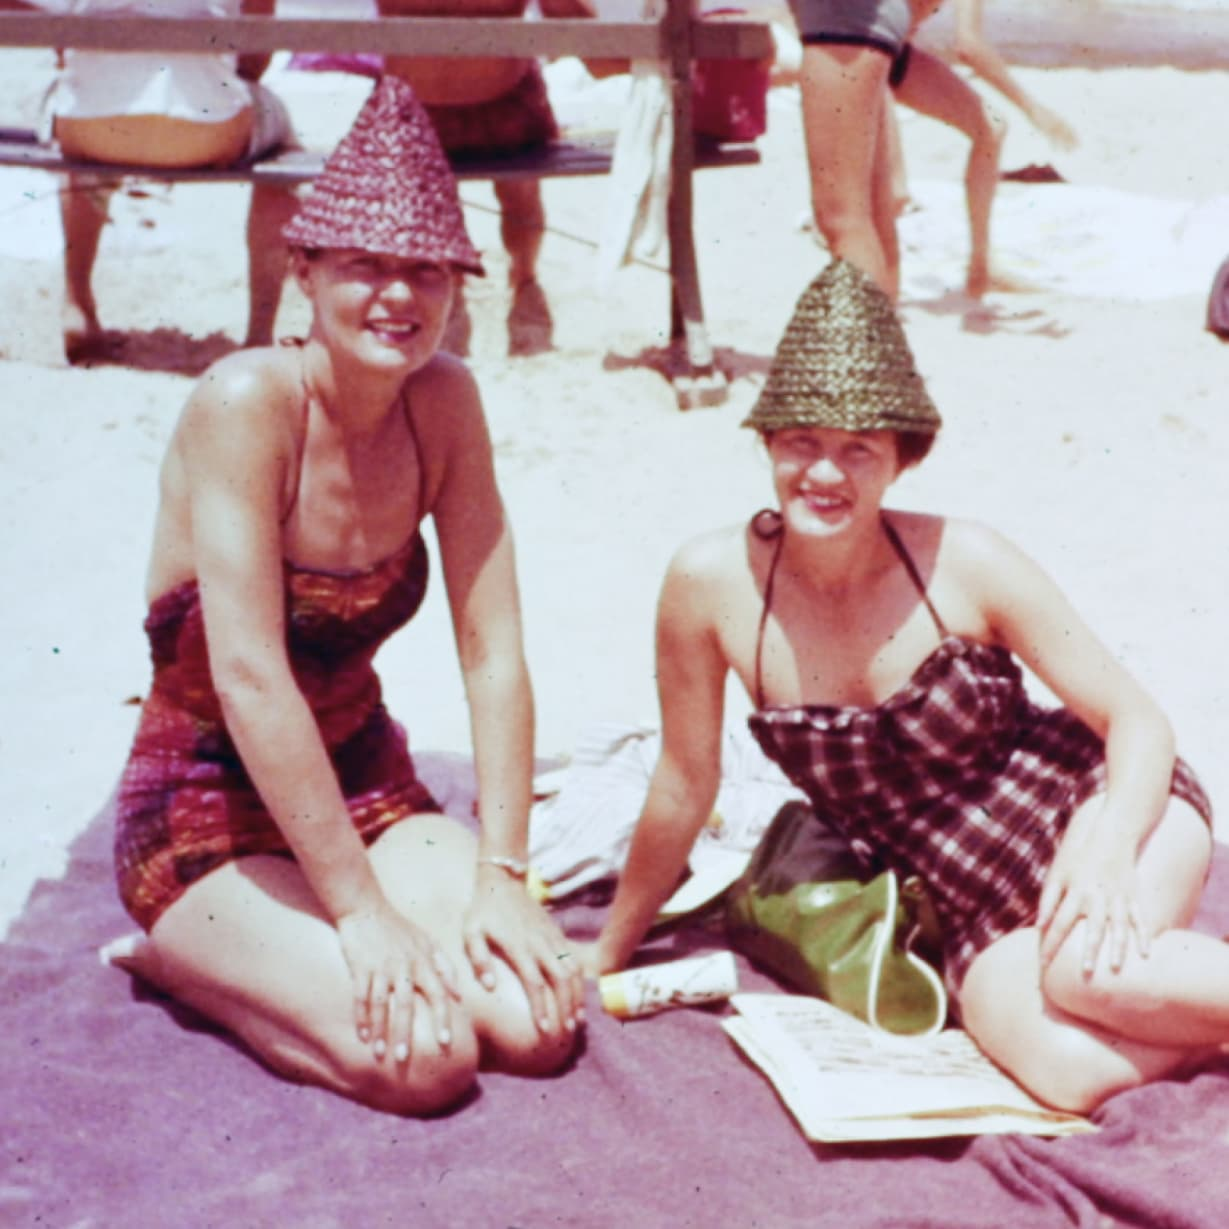 A vintage photo of two women sitting together on a beach.